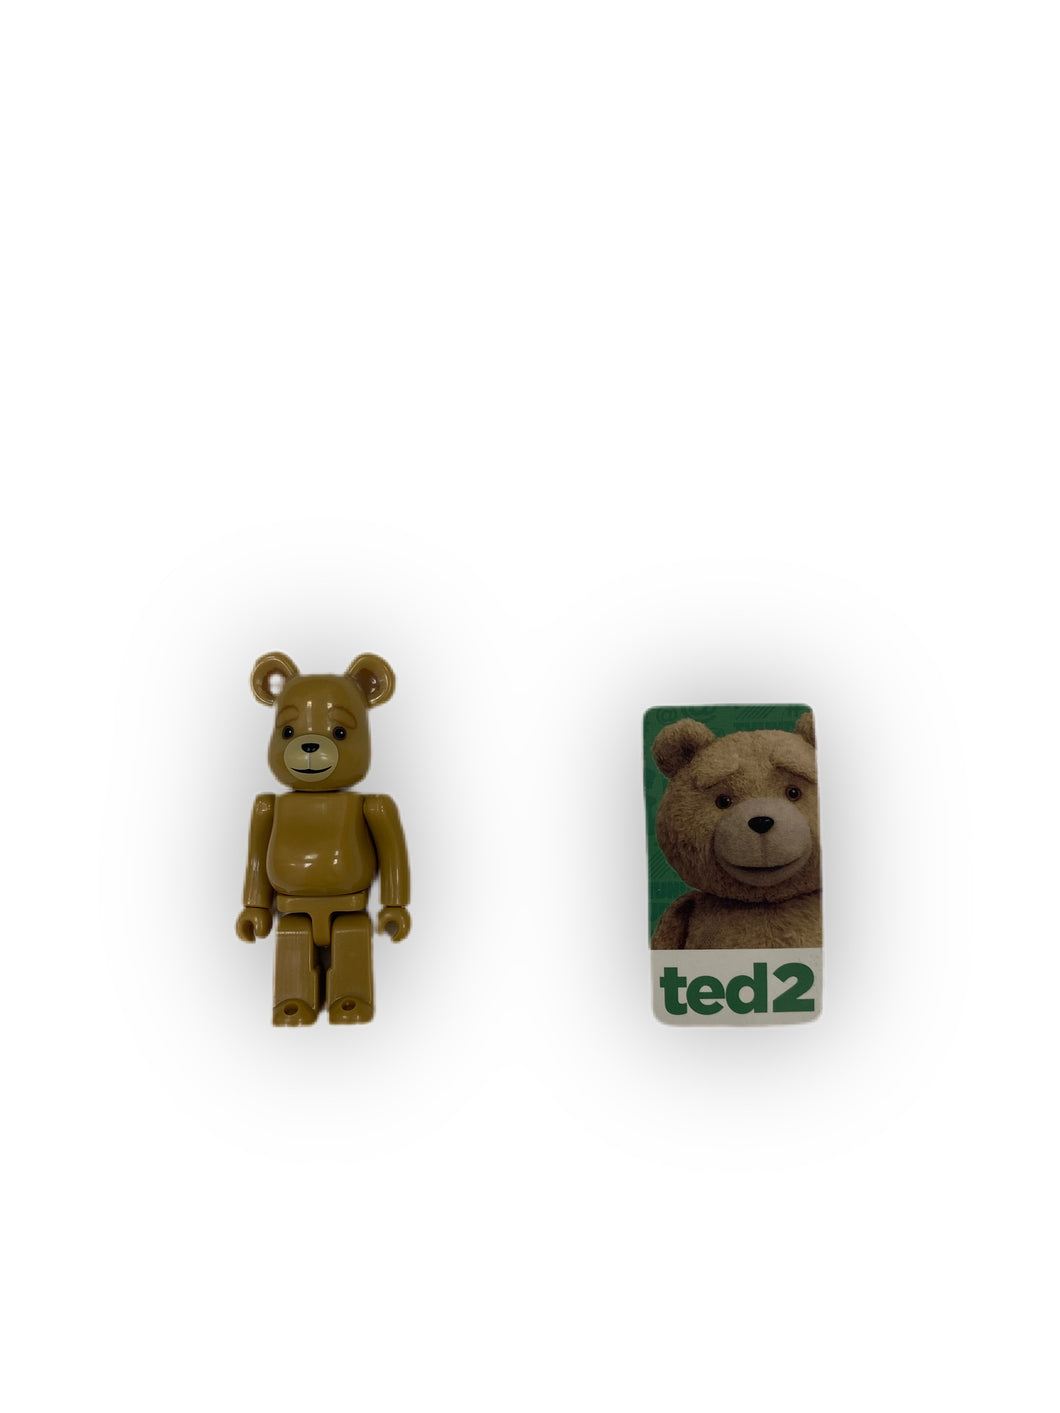 Authentic ted 2 100% Bearbrick - MrBreckz